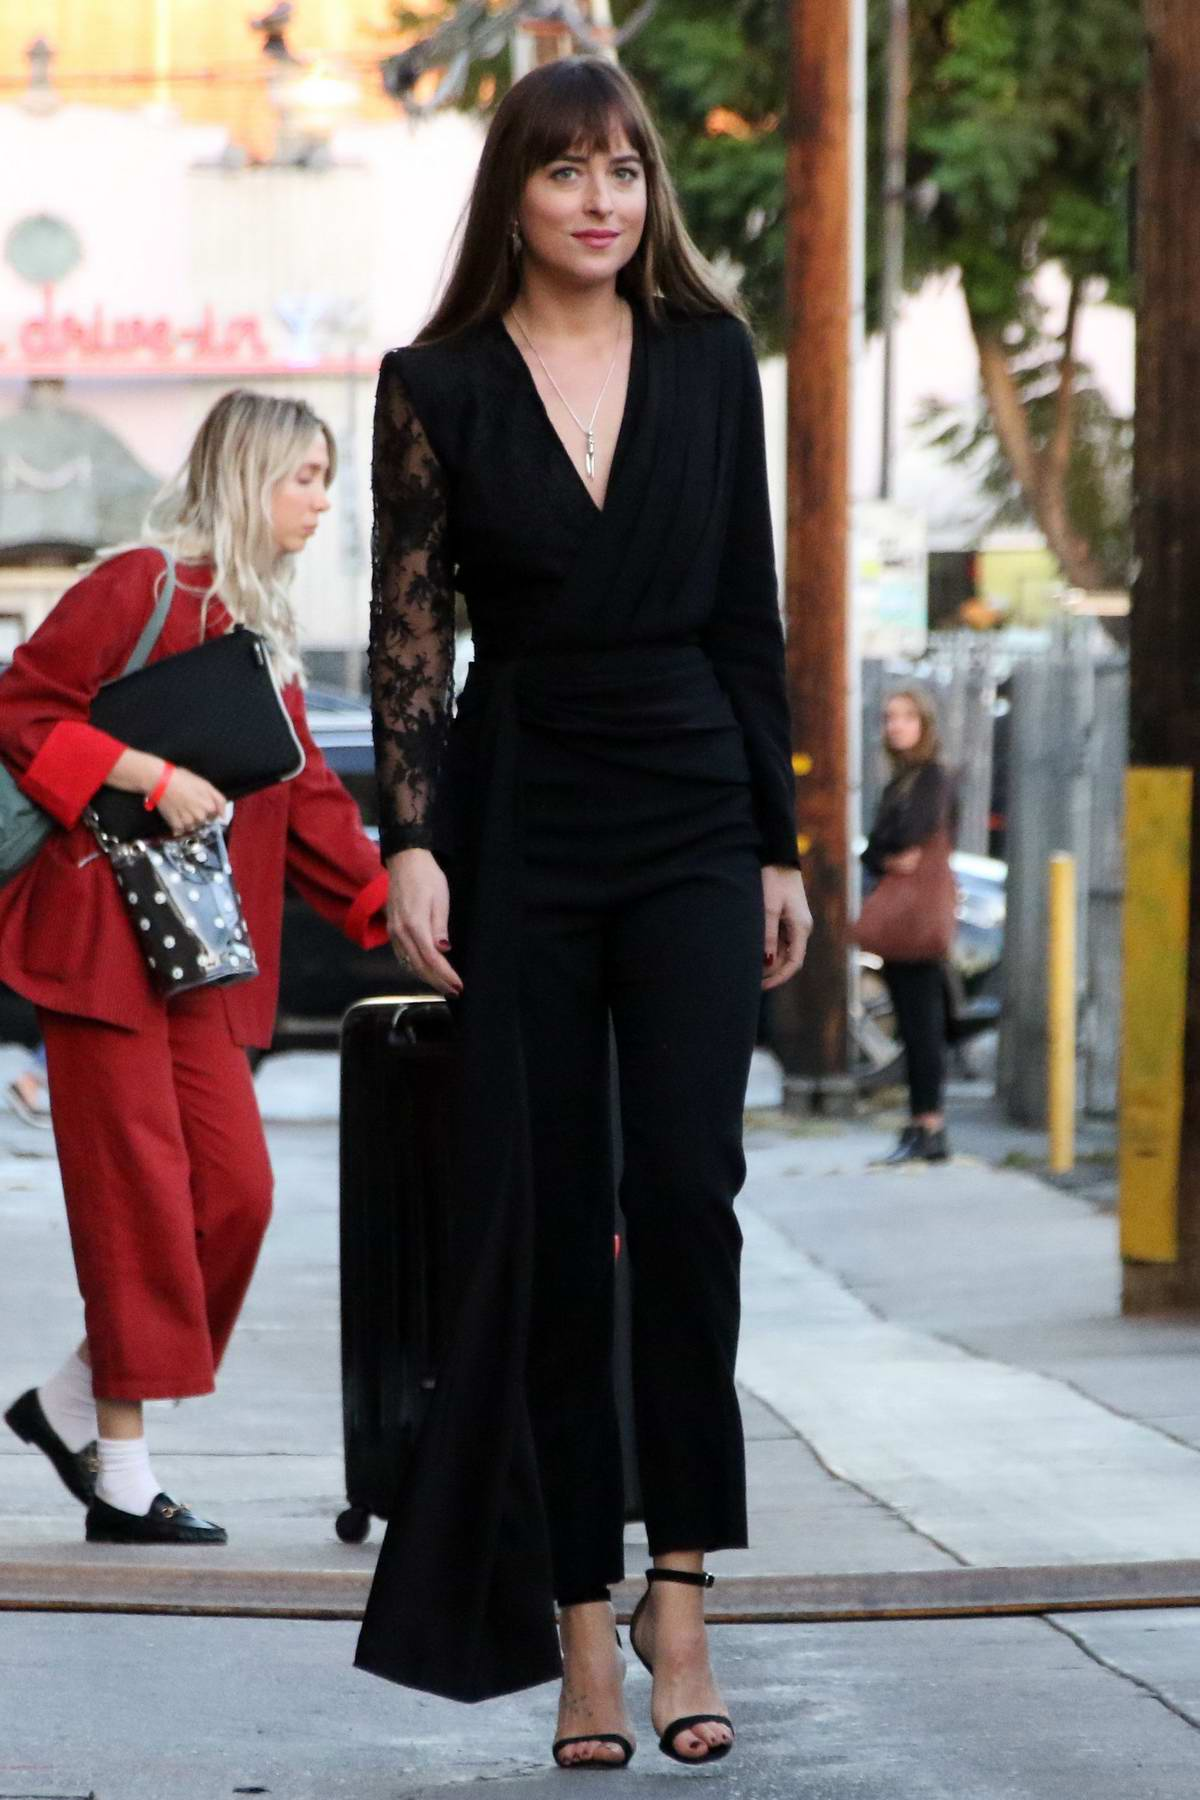 Dakota Johnson seen wearing a black outfit as she leaves after her appearance on 'Jimmy Kimmel Live!' in Hollywood, Los Angeles